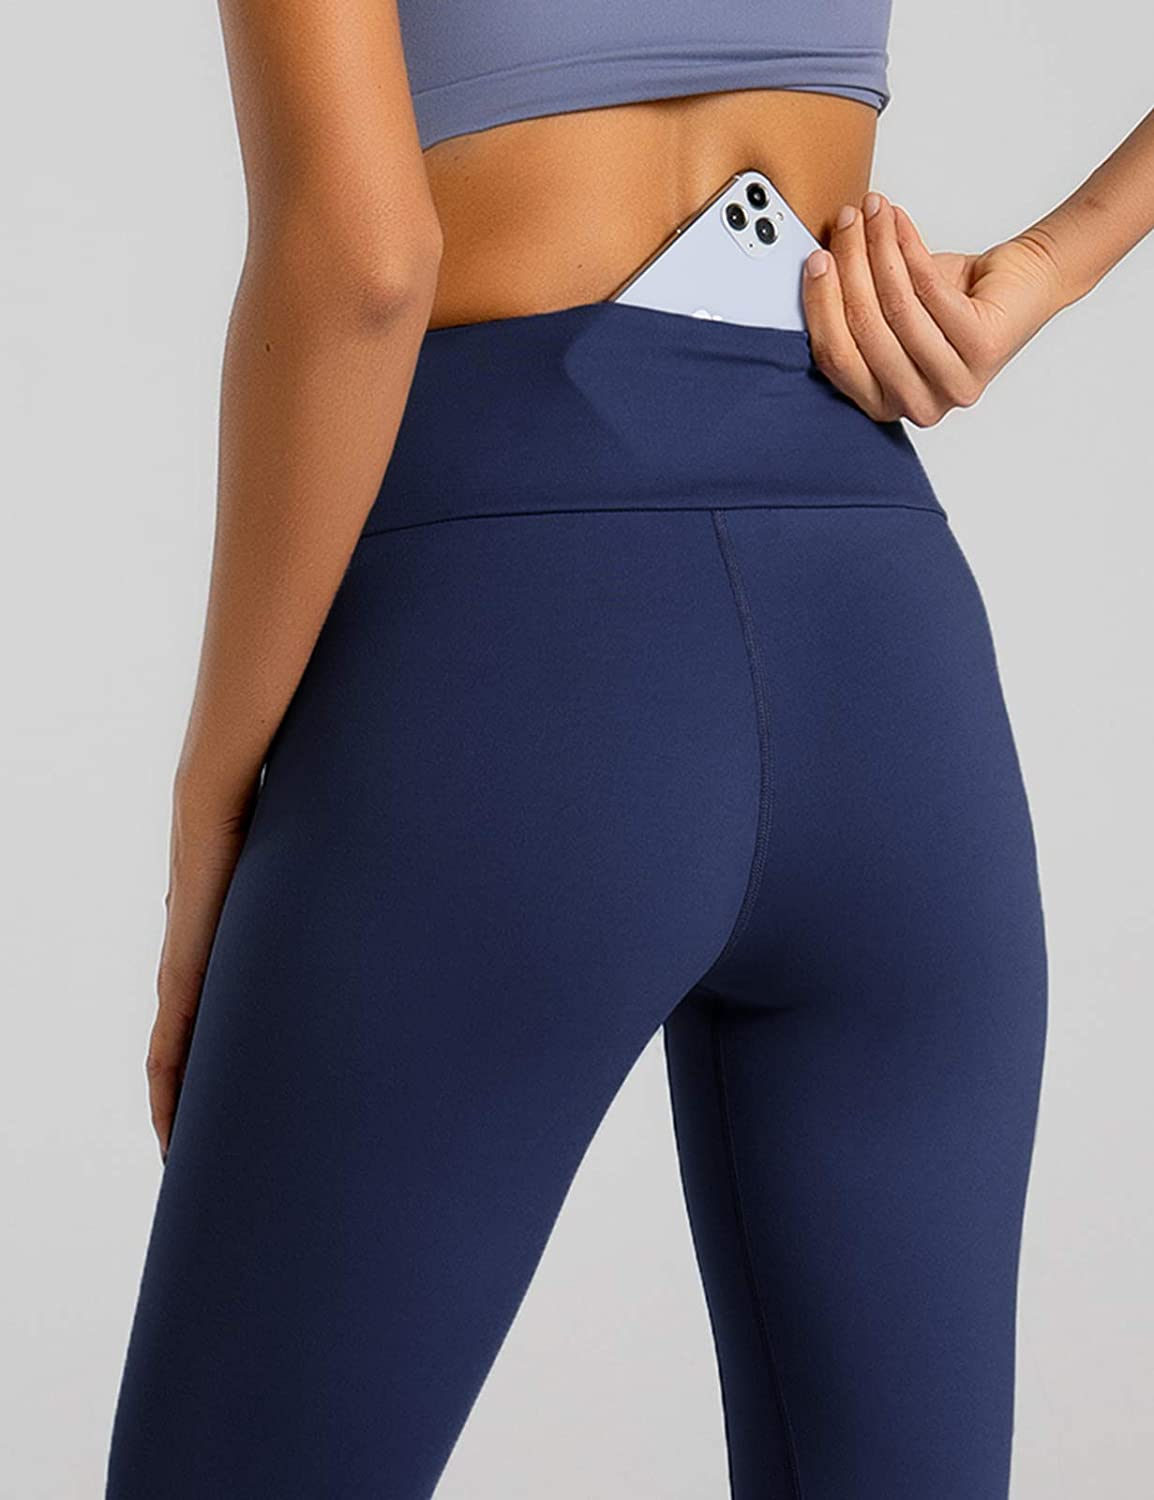 Peach Skin Finish 30/% Spandex Workout Pants Gym Tights FIRST WAY Buttery Soft Womens Yoga Leggings with Pockets